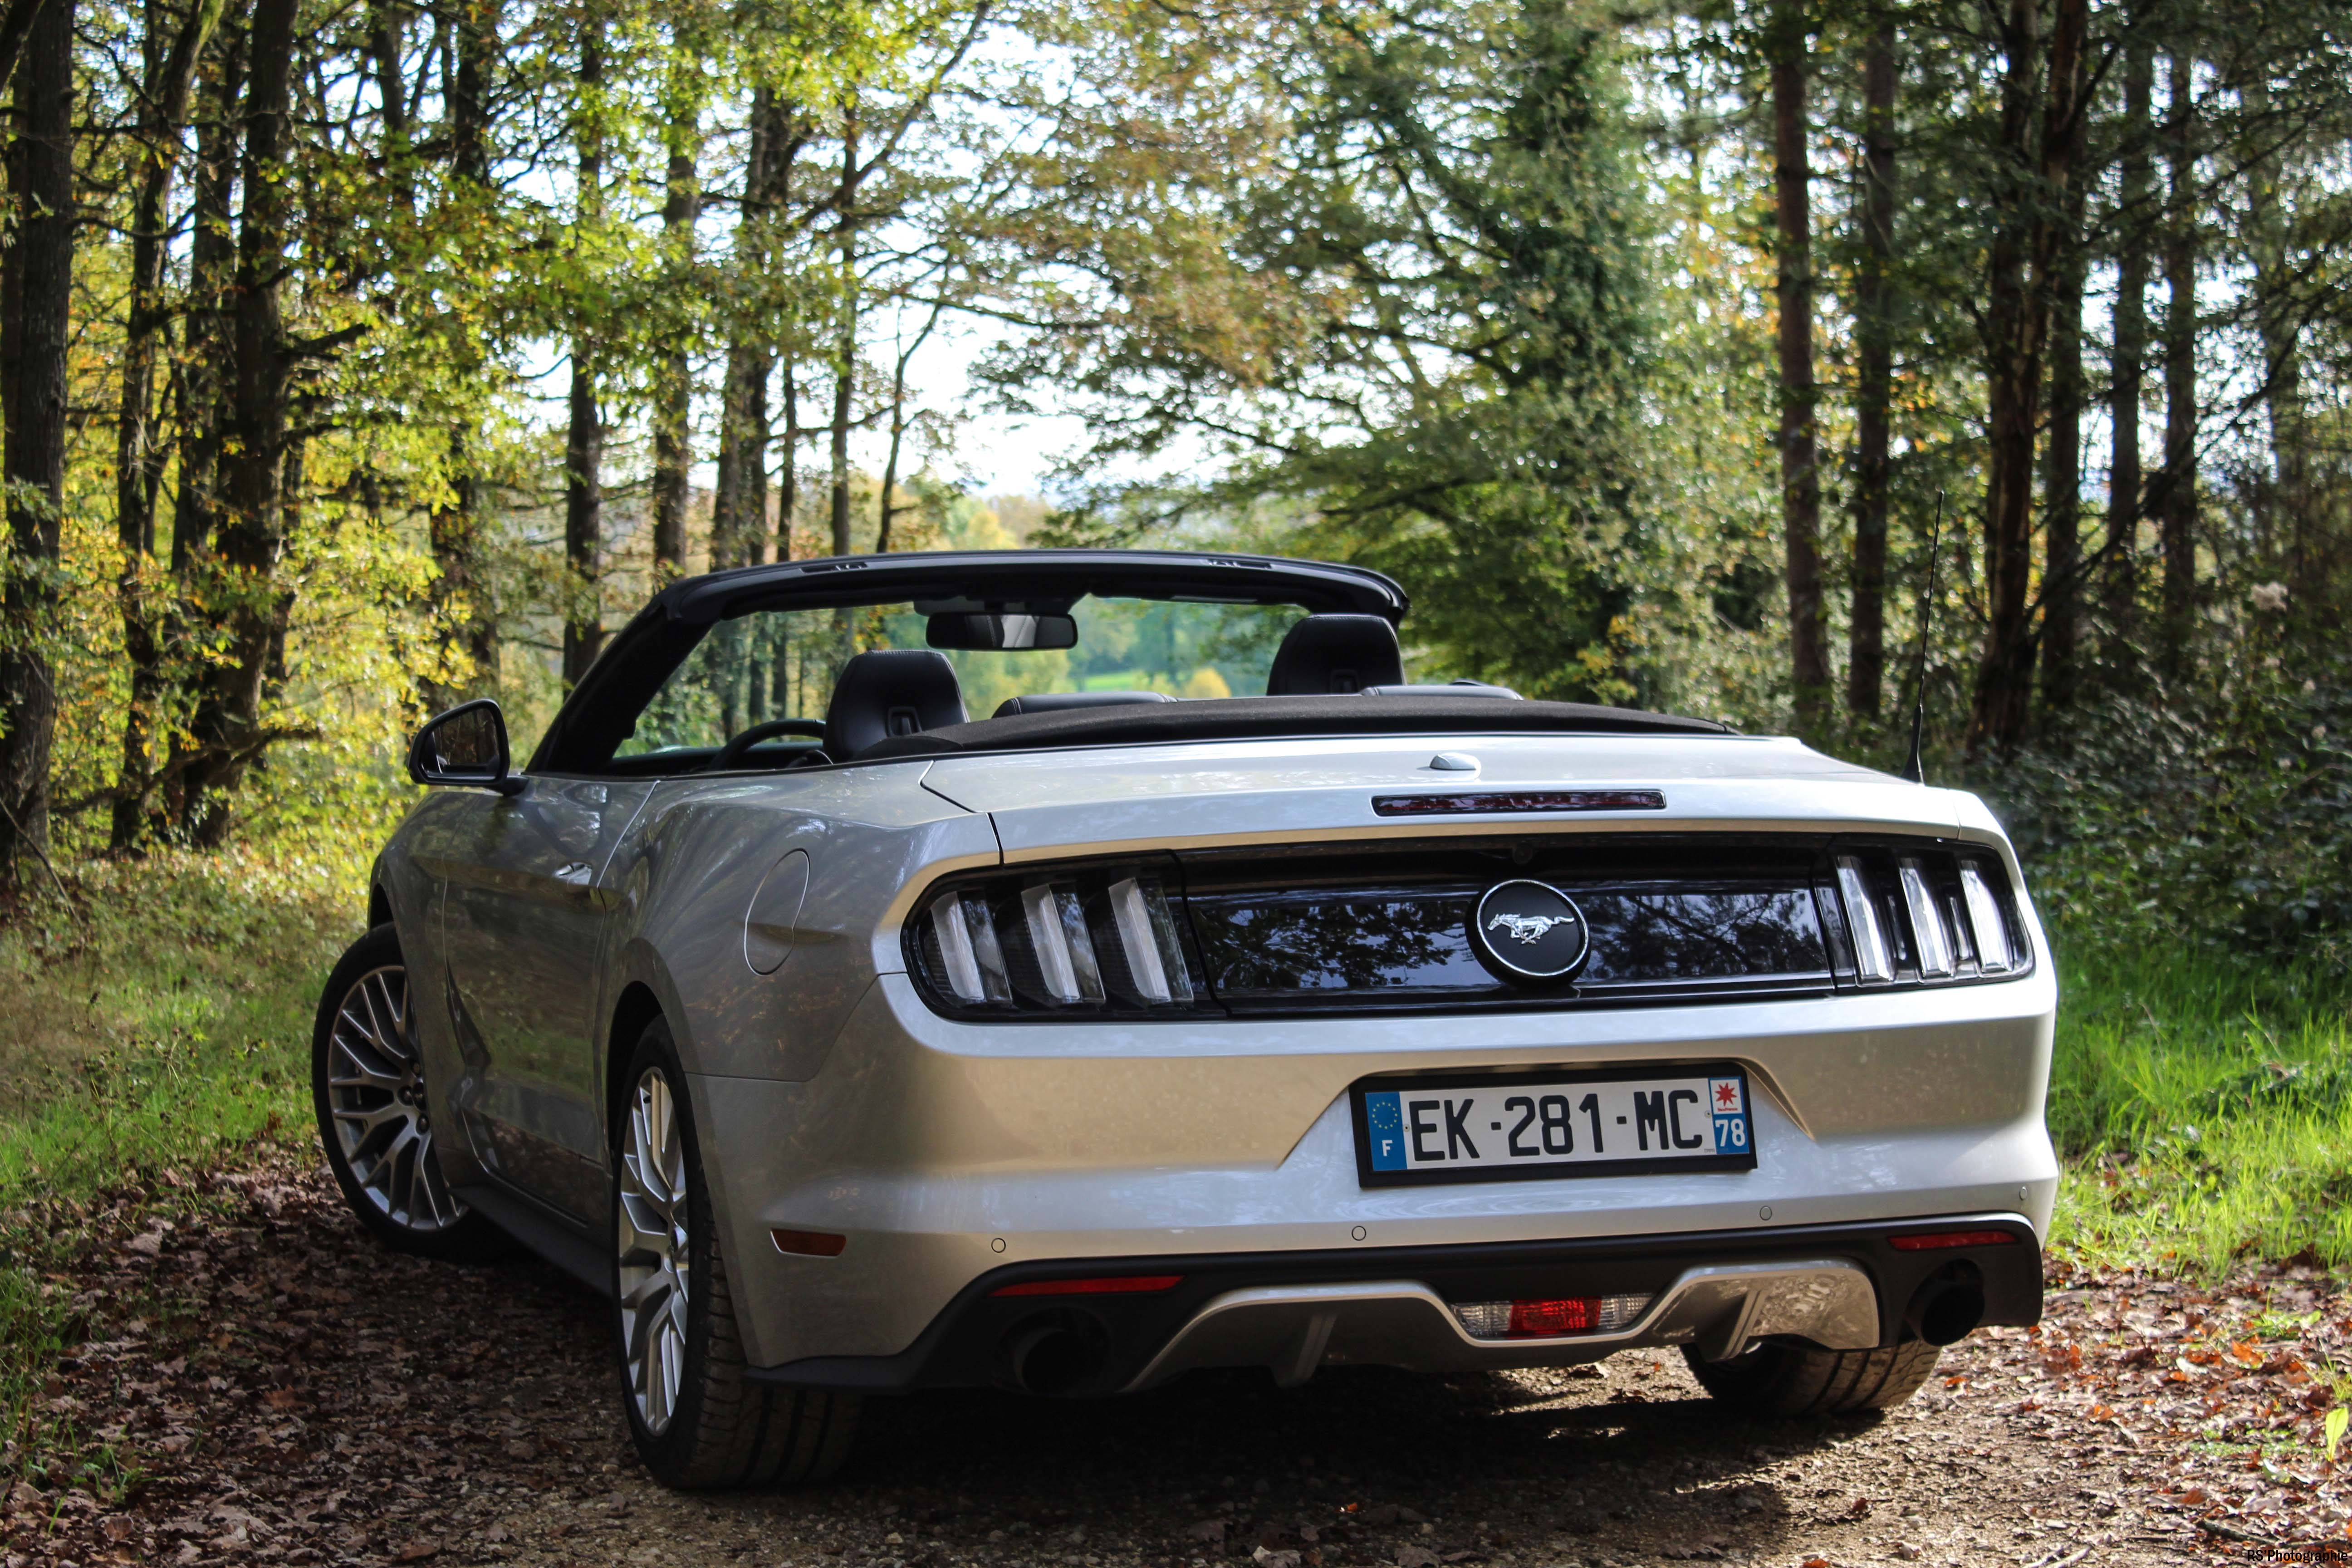 fordmustangeconvertible48-ford-mustang-convertible-ecoboost-arriere-rear-Arnaud Demasier-RSPhotographie